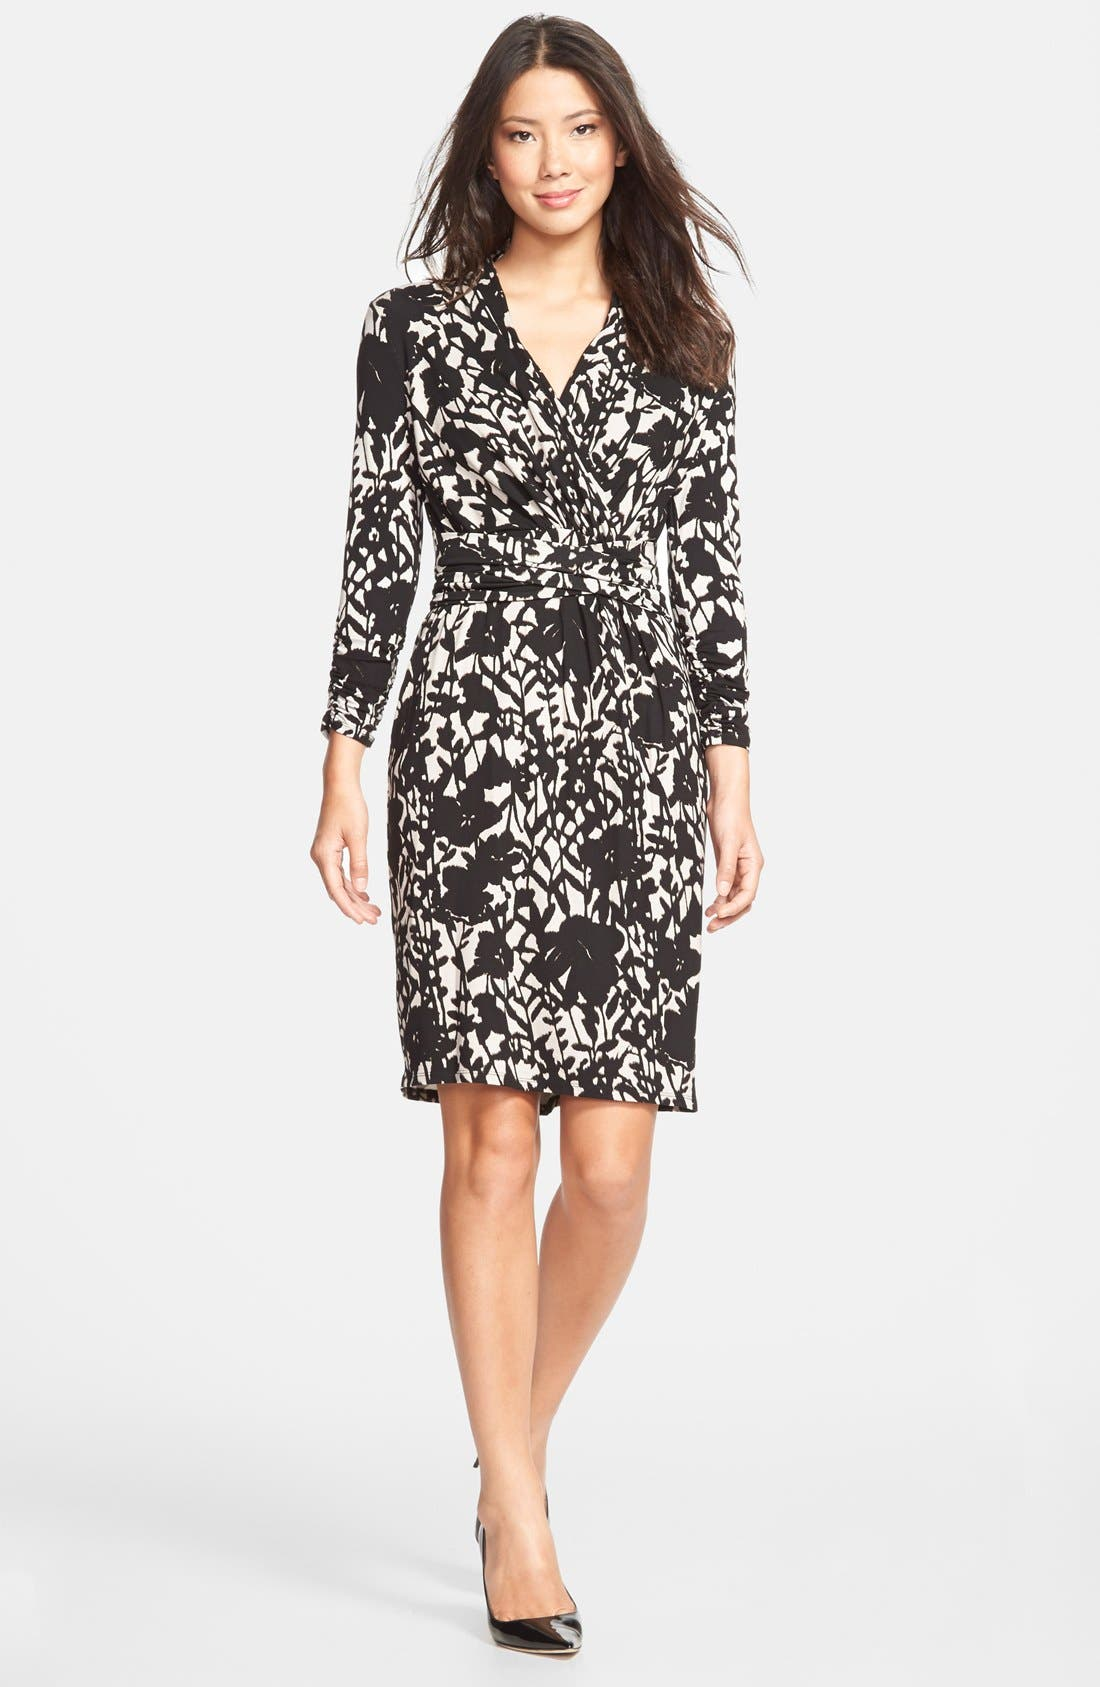 Alternate Image 1 Selected - Adrianna Papell Floral Print Faux Wrap Dress